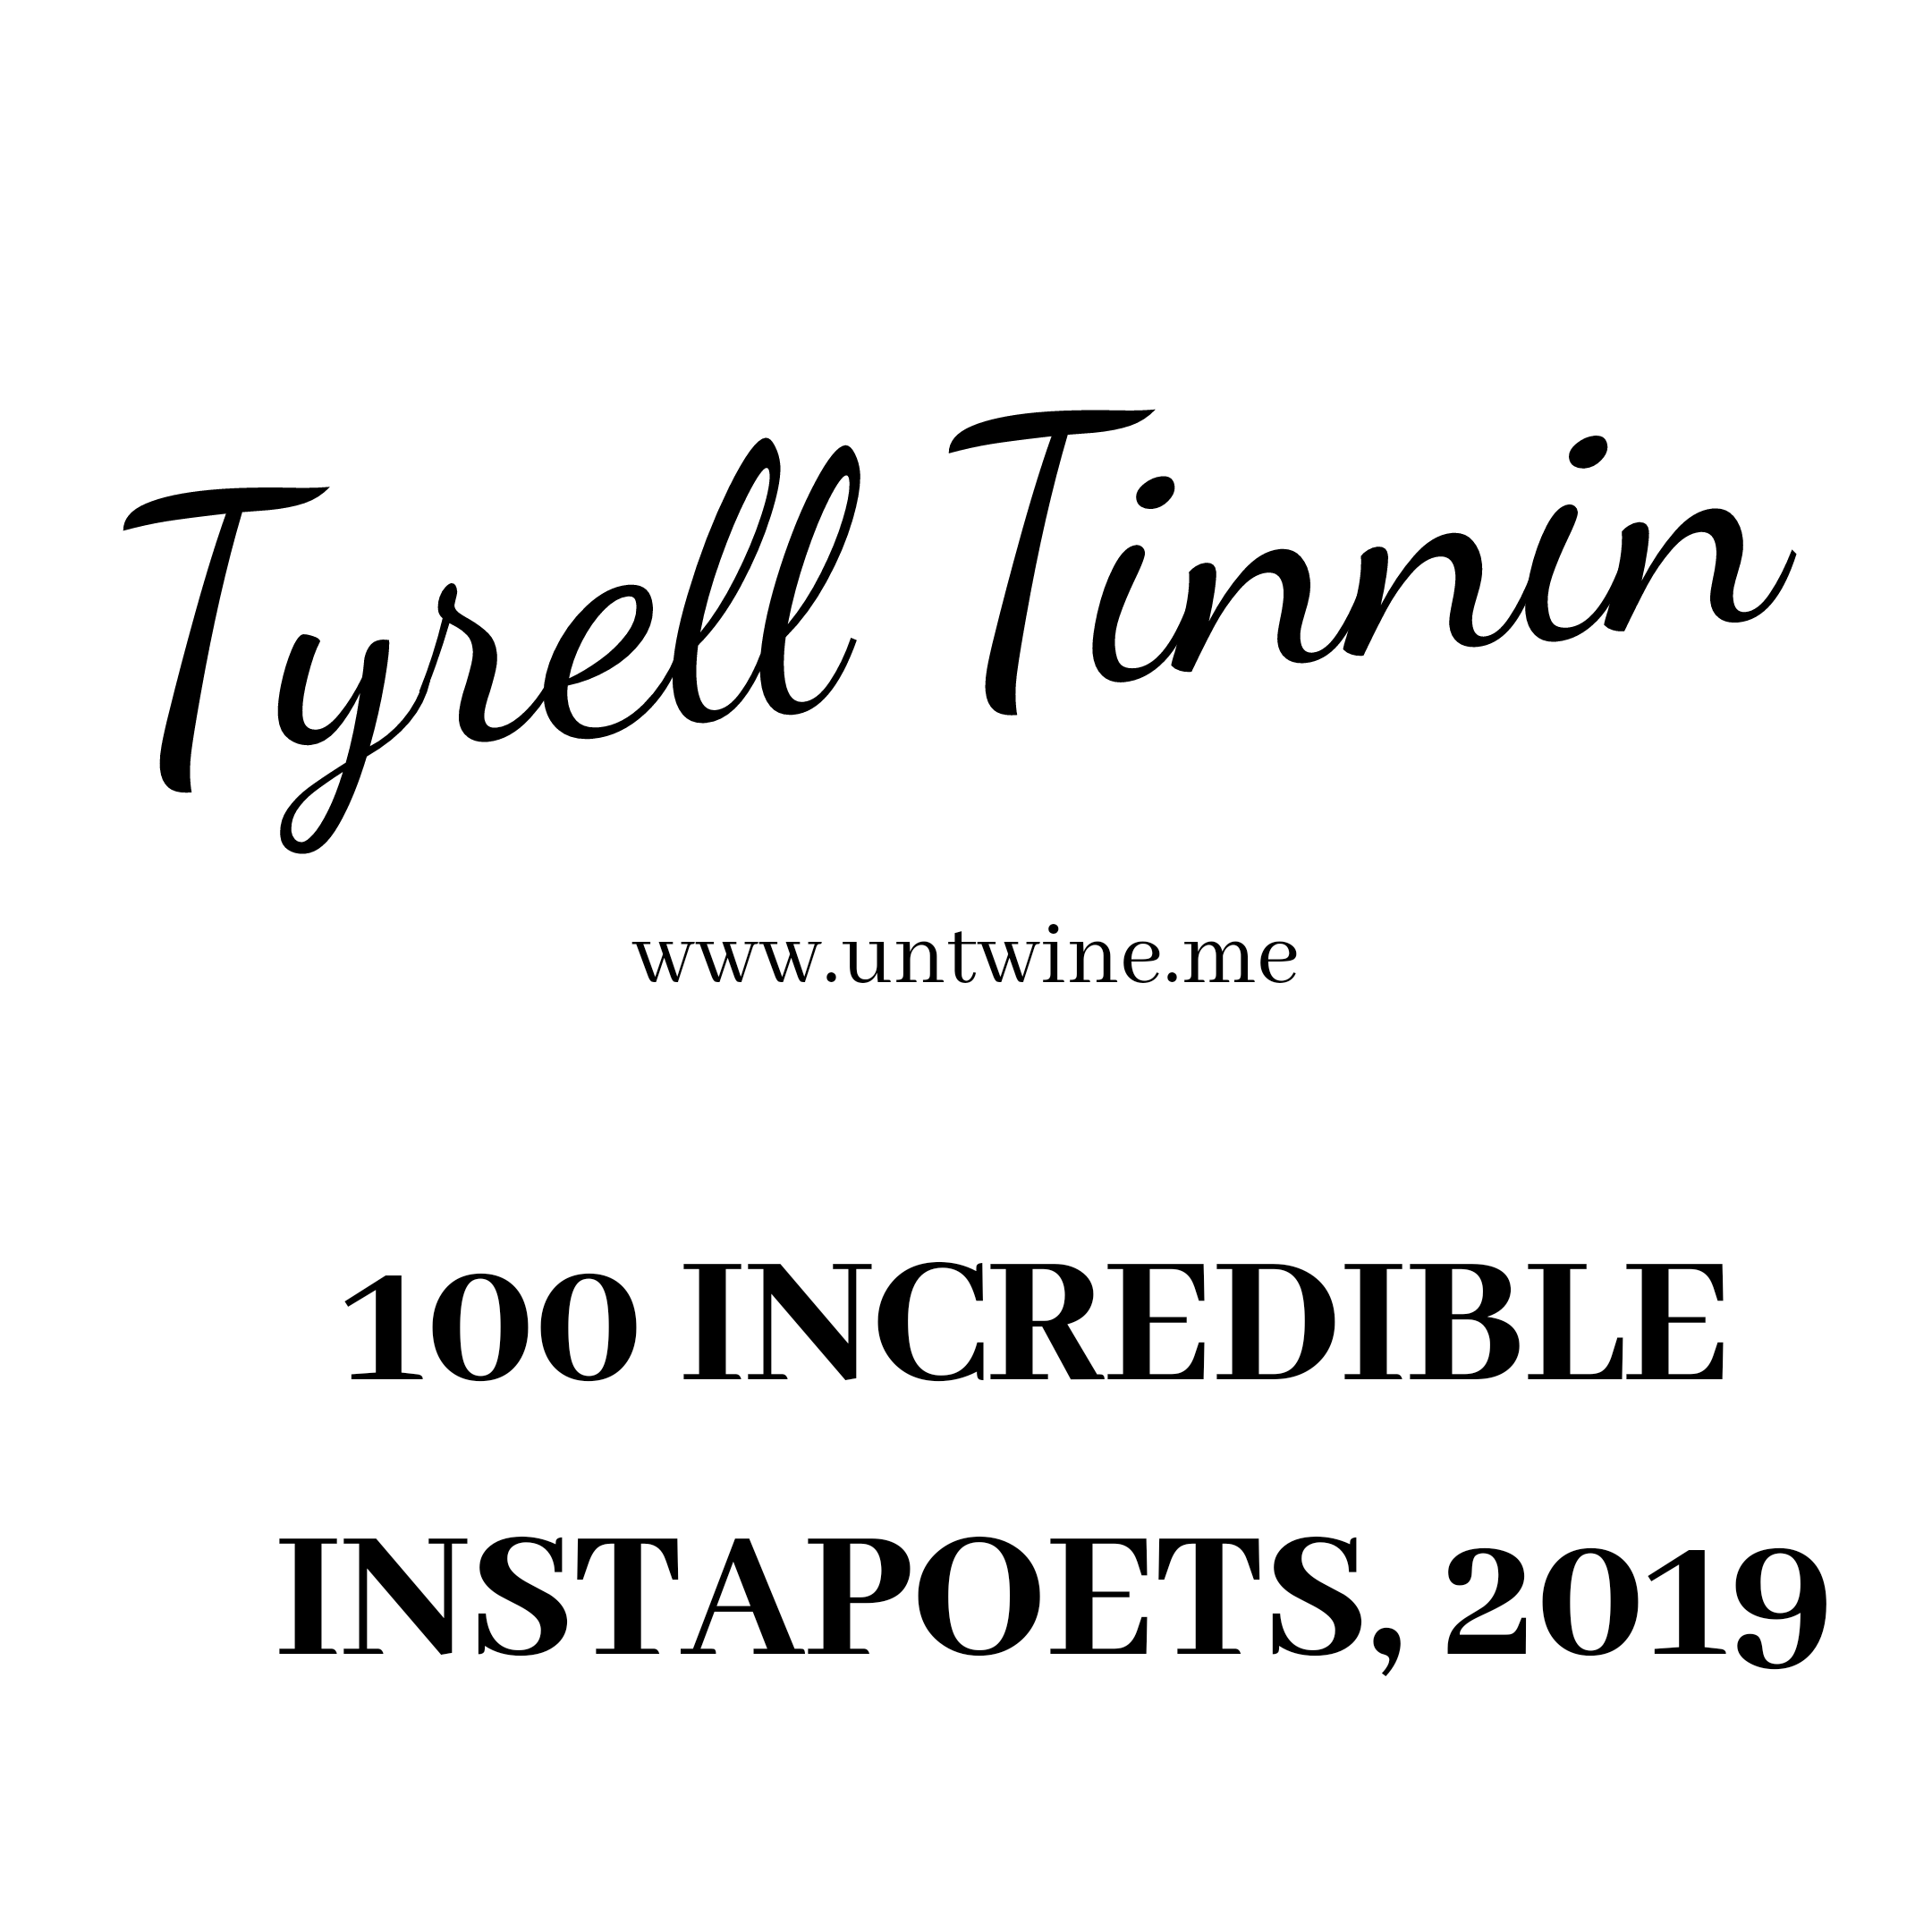 100 INCREDIBLE INSTAPOETS, 2019: TYRELL TINNIN